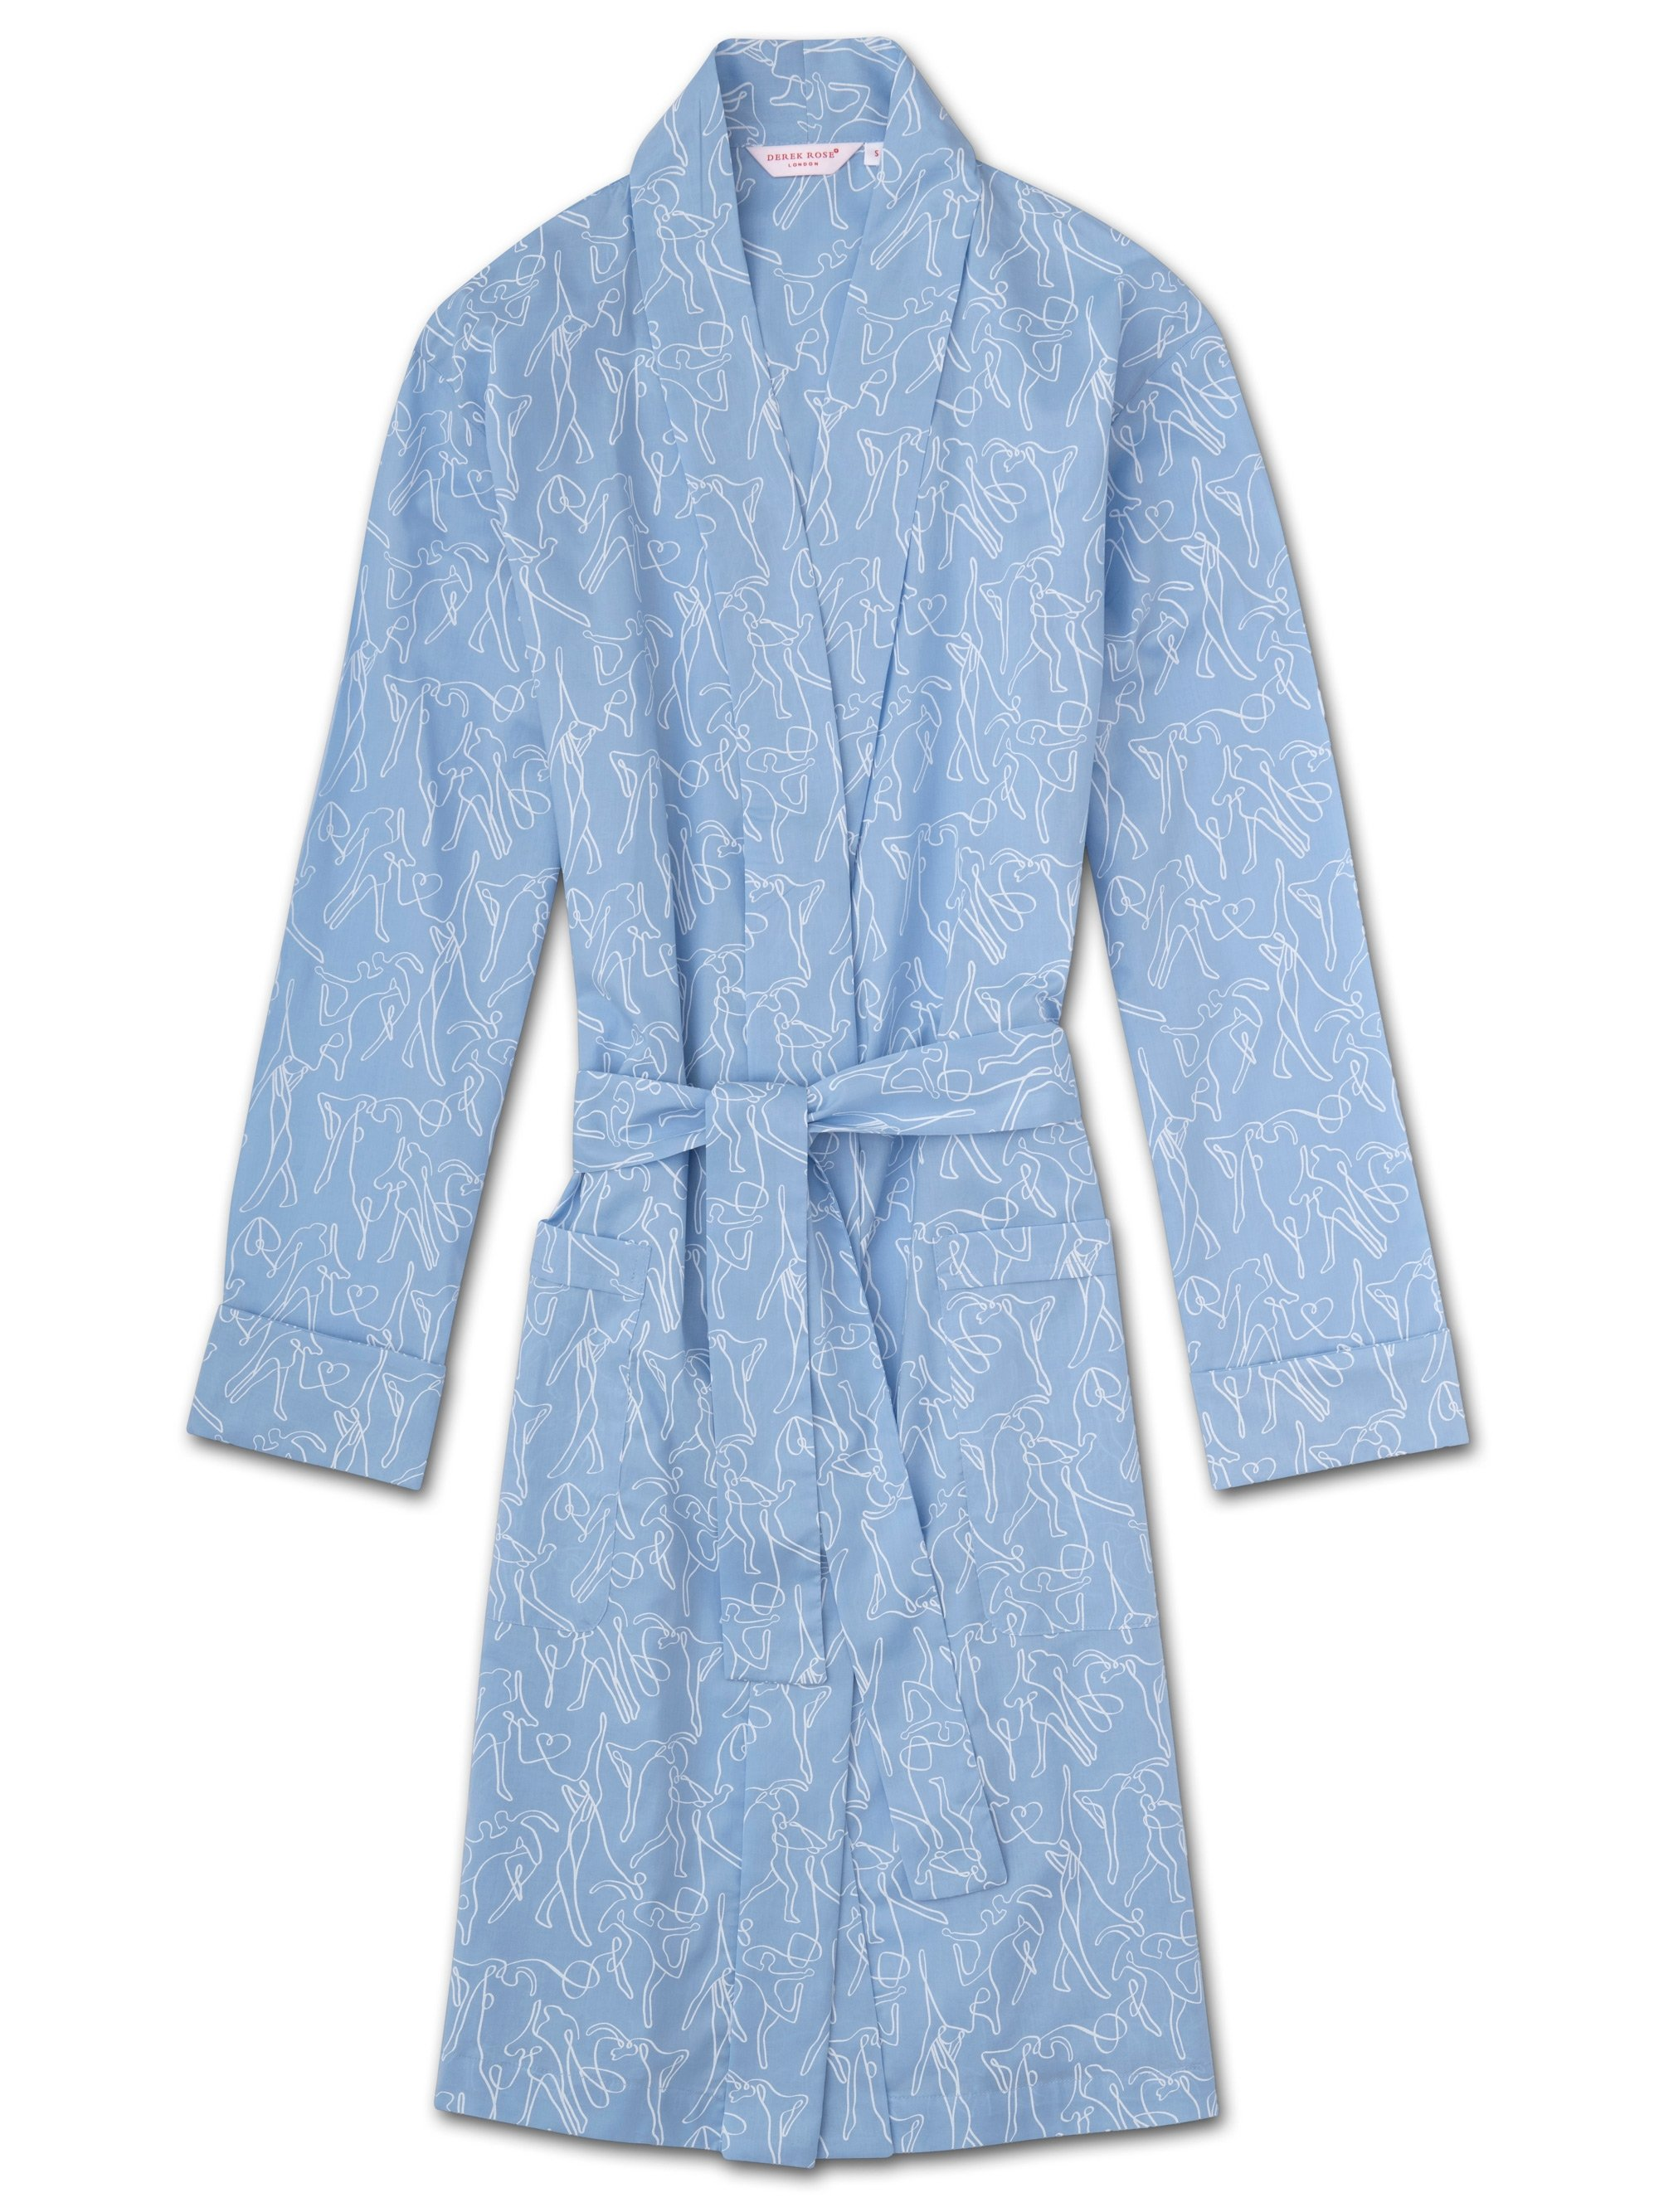 Women's Dressing Gown Nelson 76 Cotton Batiste Sky